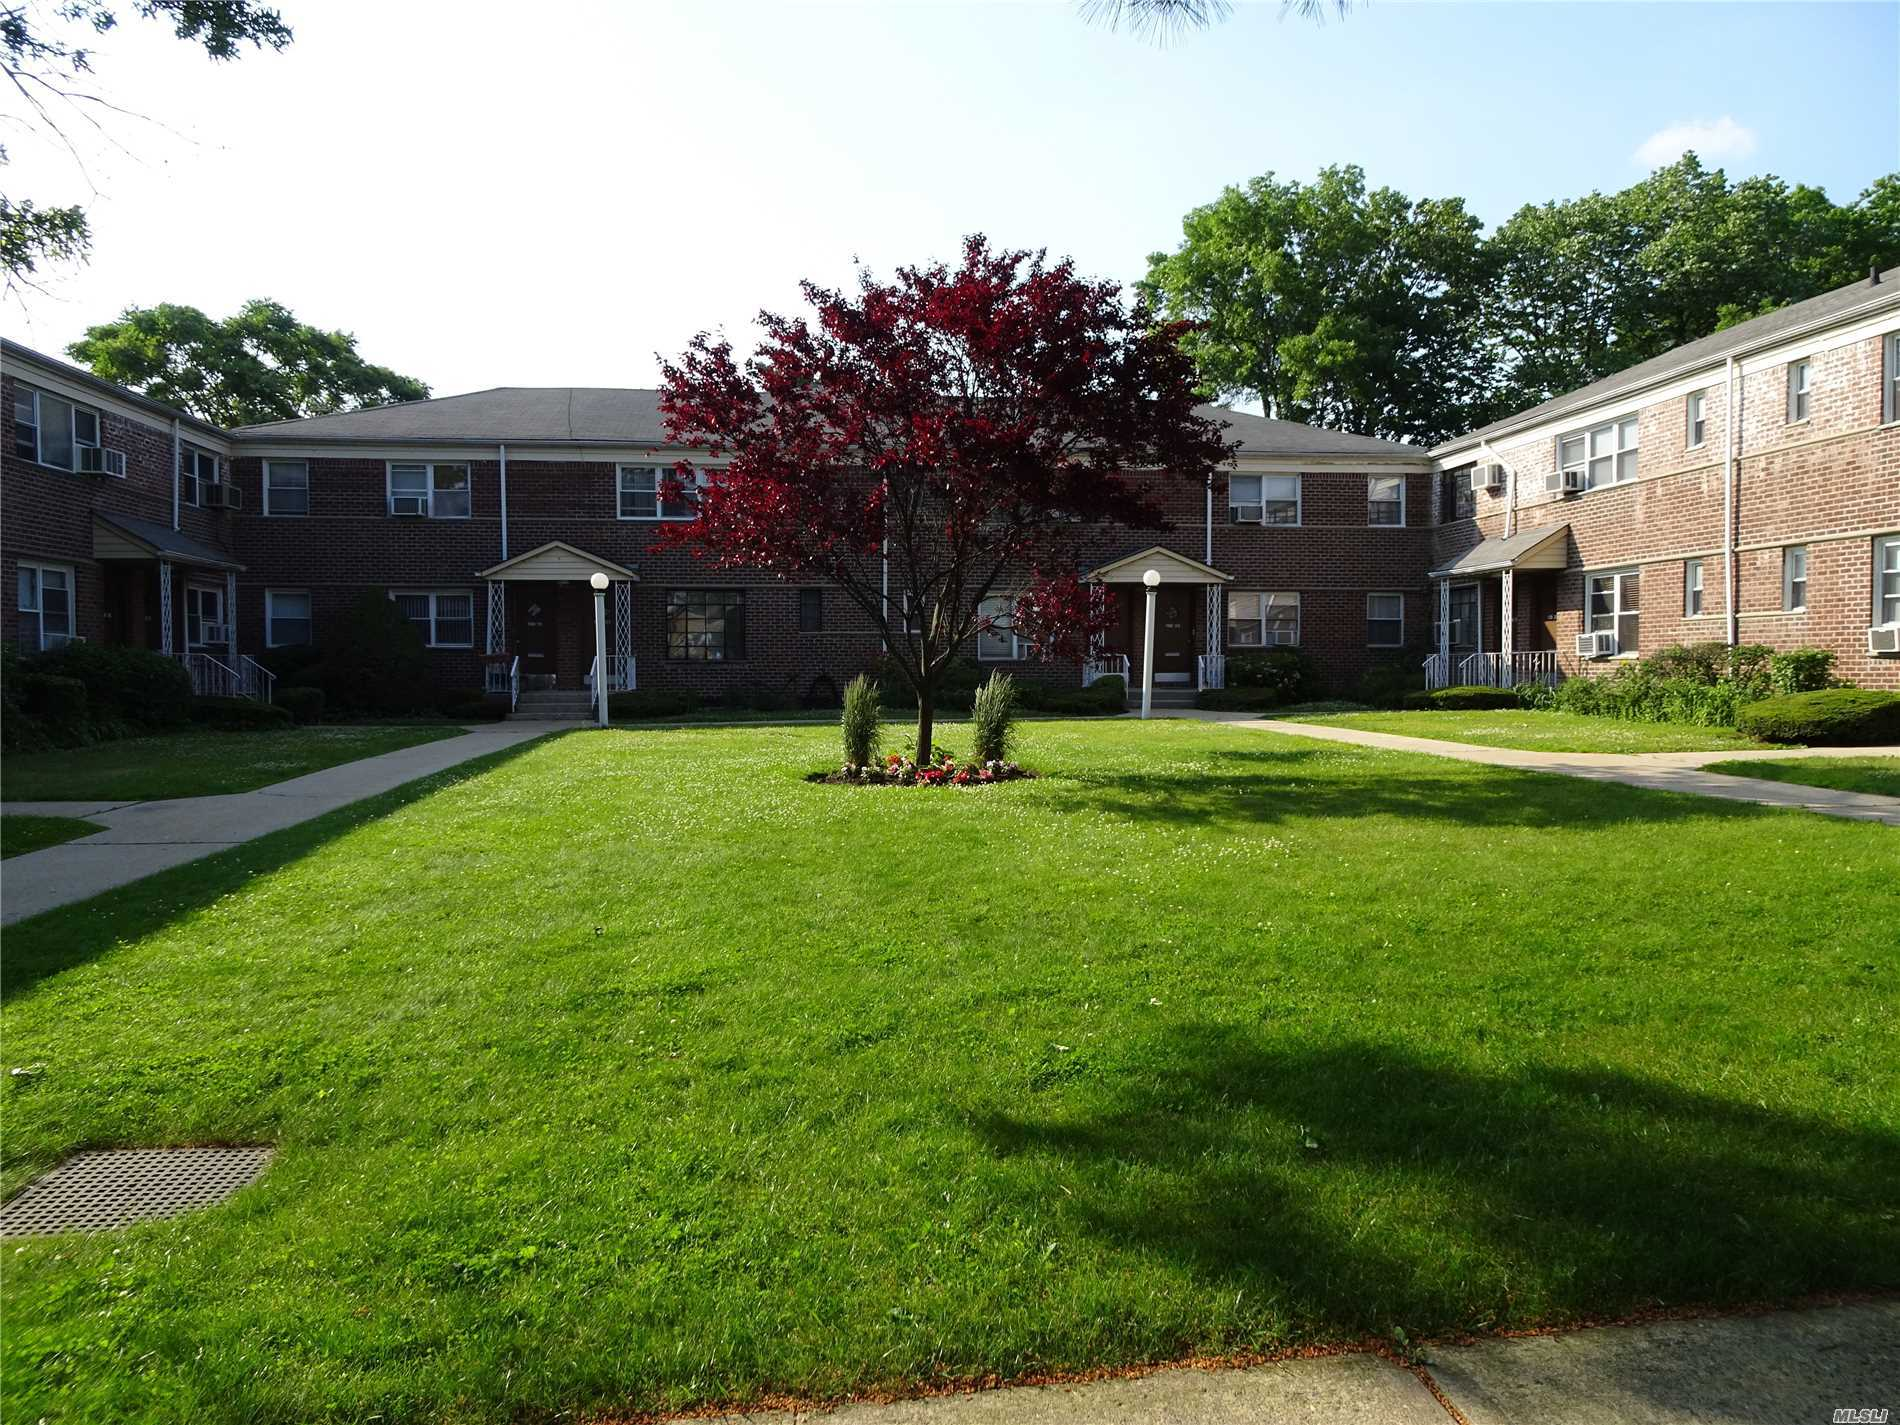 Come See This Large One Bedroom Garden Apartment On The 2nd Floor. Wood Floors Throughout, Lots Of Storage Including The Attic. Corner Unit Allows The Flow Of Light Throughout The Whole Apartment. Quiet Neighborhood, Near Grand Central Pkwy, Shopping And Transportation.